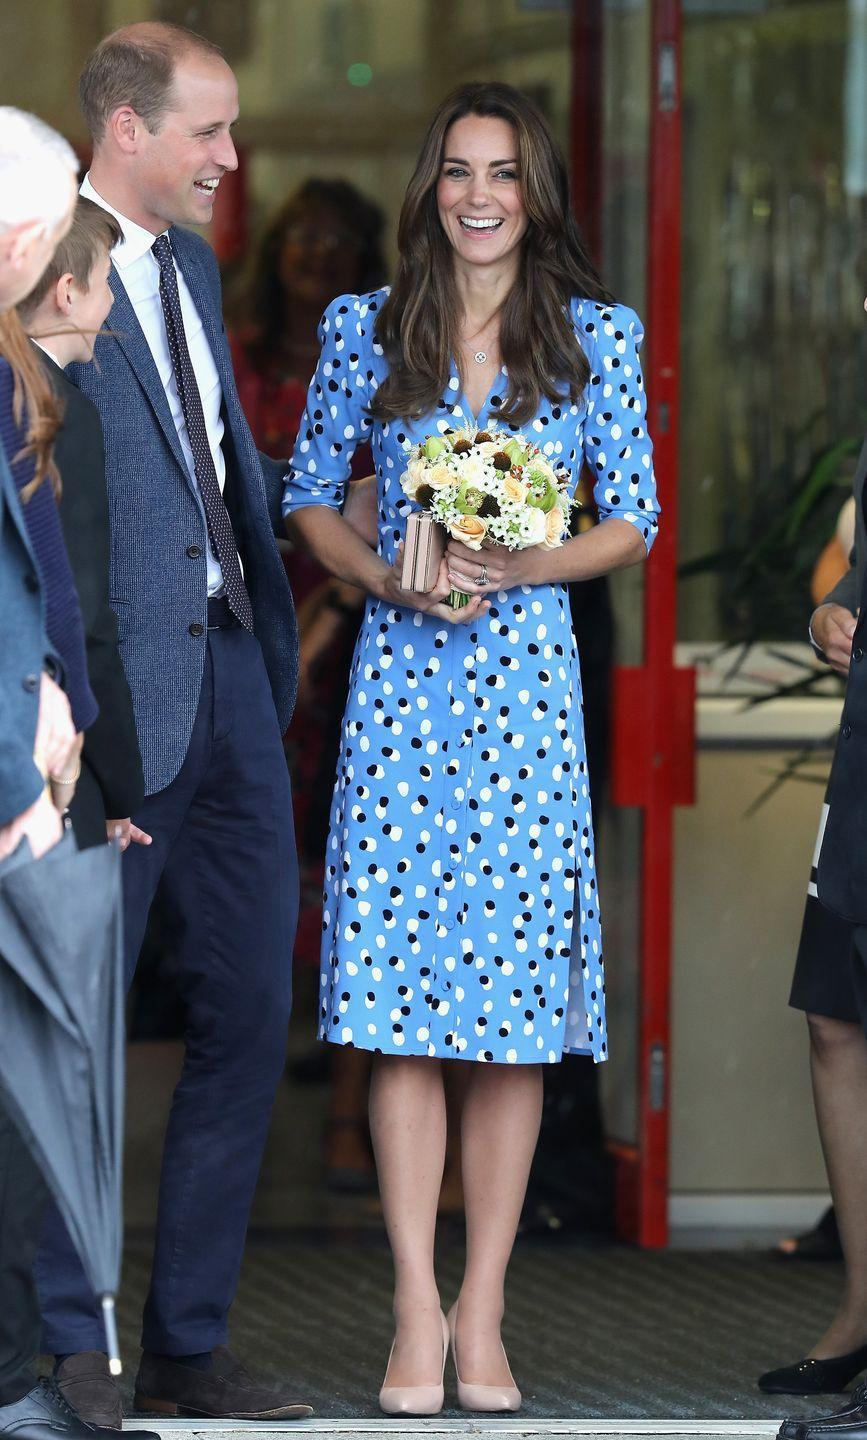 <p>The Duchess wears a printed blue Altuzarra dress and nude pumps while in<br><br><br><br><br><br><br><br><br><br><br><br><br><br><br><br><br><br><br><br><br><br><br><br><br><br><br>Stewards Academy in Harlow, Essex with Prince William.</p>